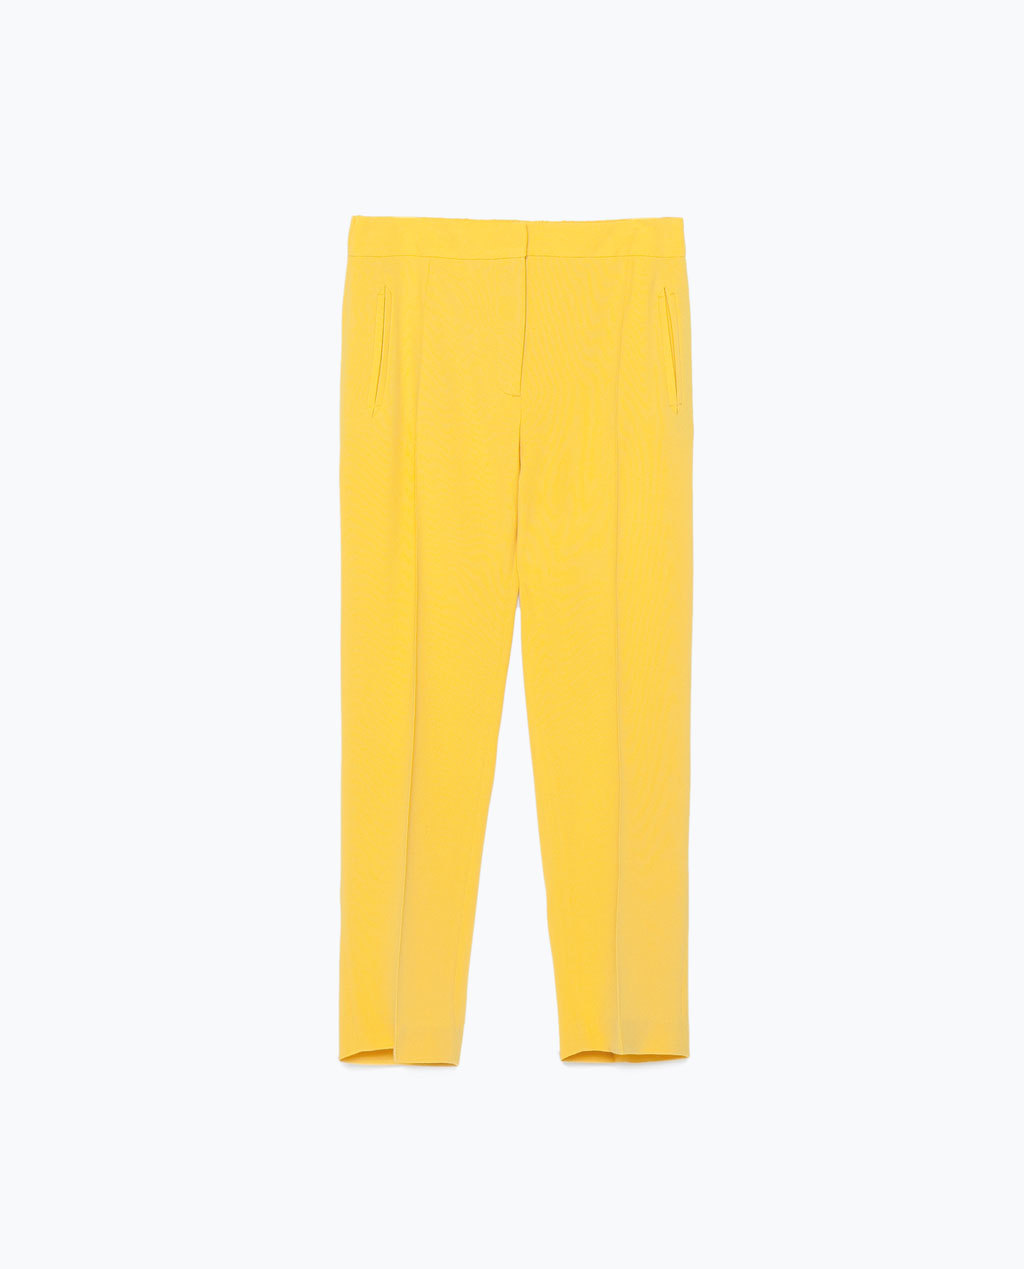 Trousers With Elastic Waist - length: standard; pattern: plain; waist: mid/regular rise; predominant colour: yellow; occasions: casual, creative work; fit: slim leg; pattern type: fabric; texture group: woven light midweight; style: standard; season: s/s 2015; wardrobe: highlight